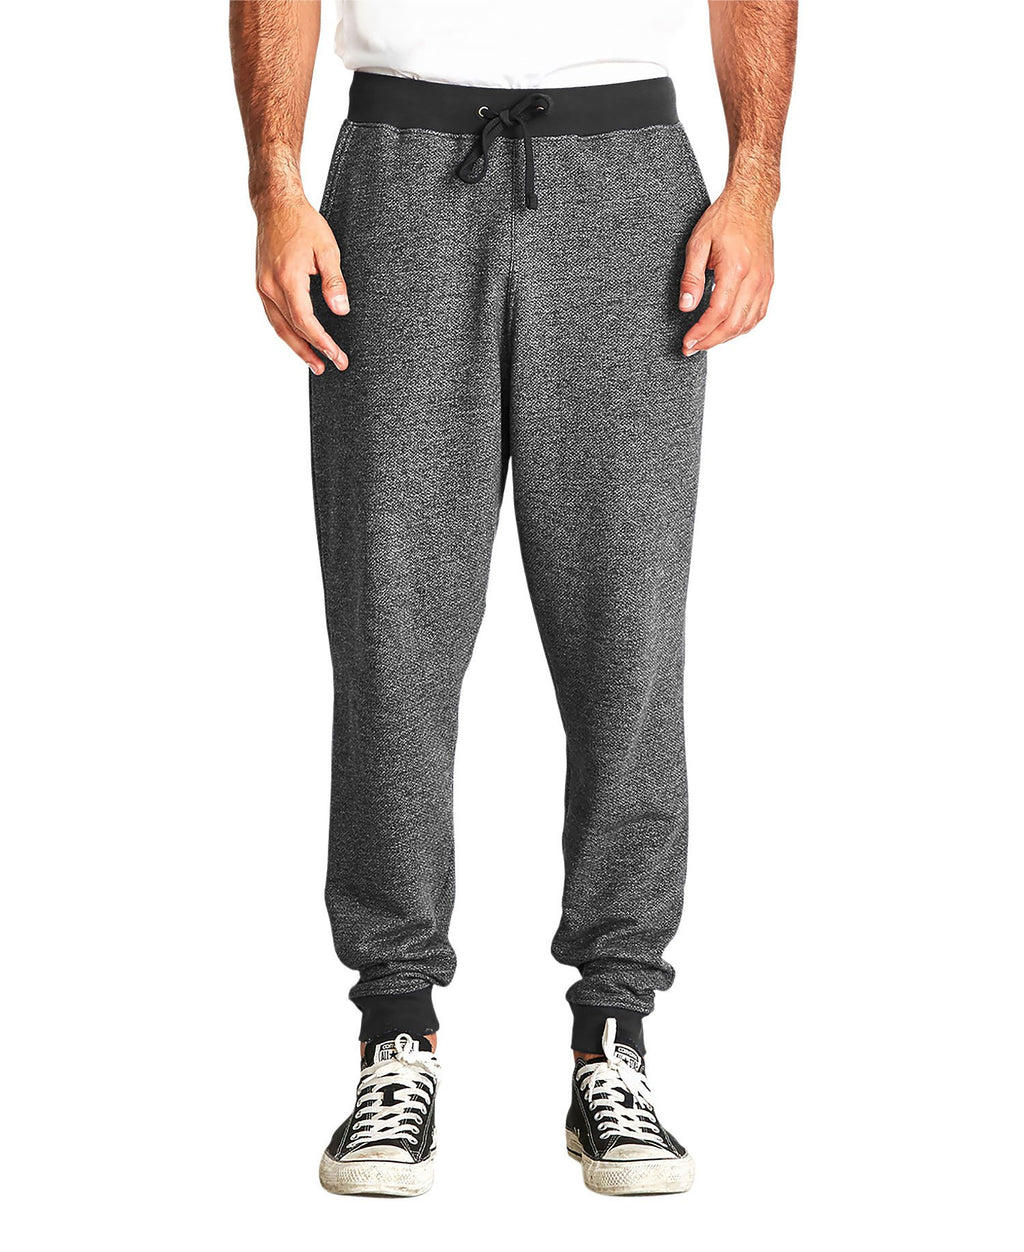 Next Level Men's Denim Fleece Joggers NL9800